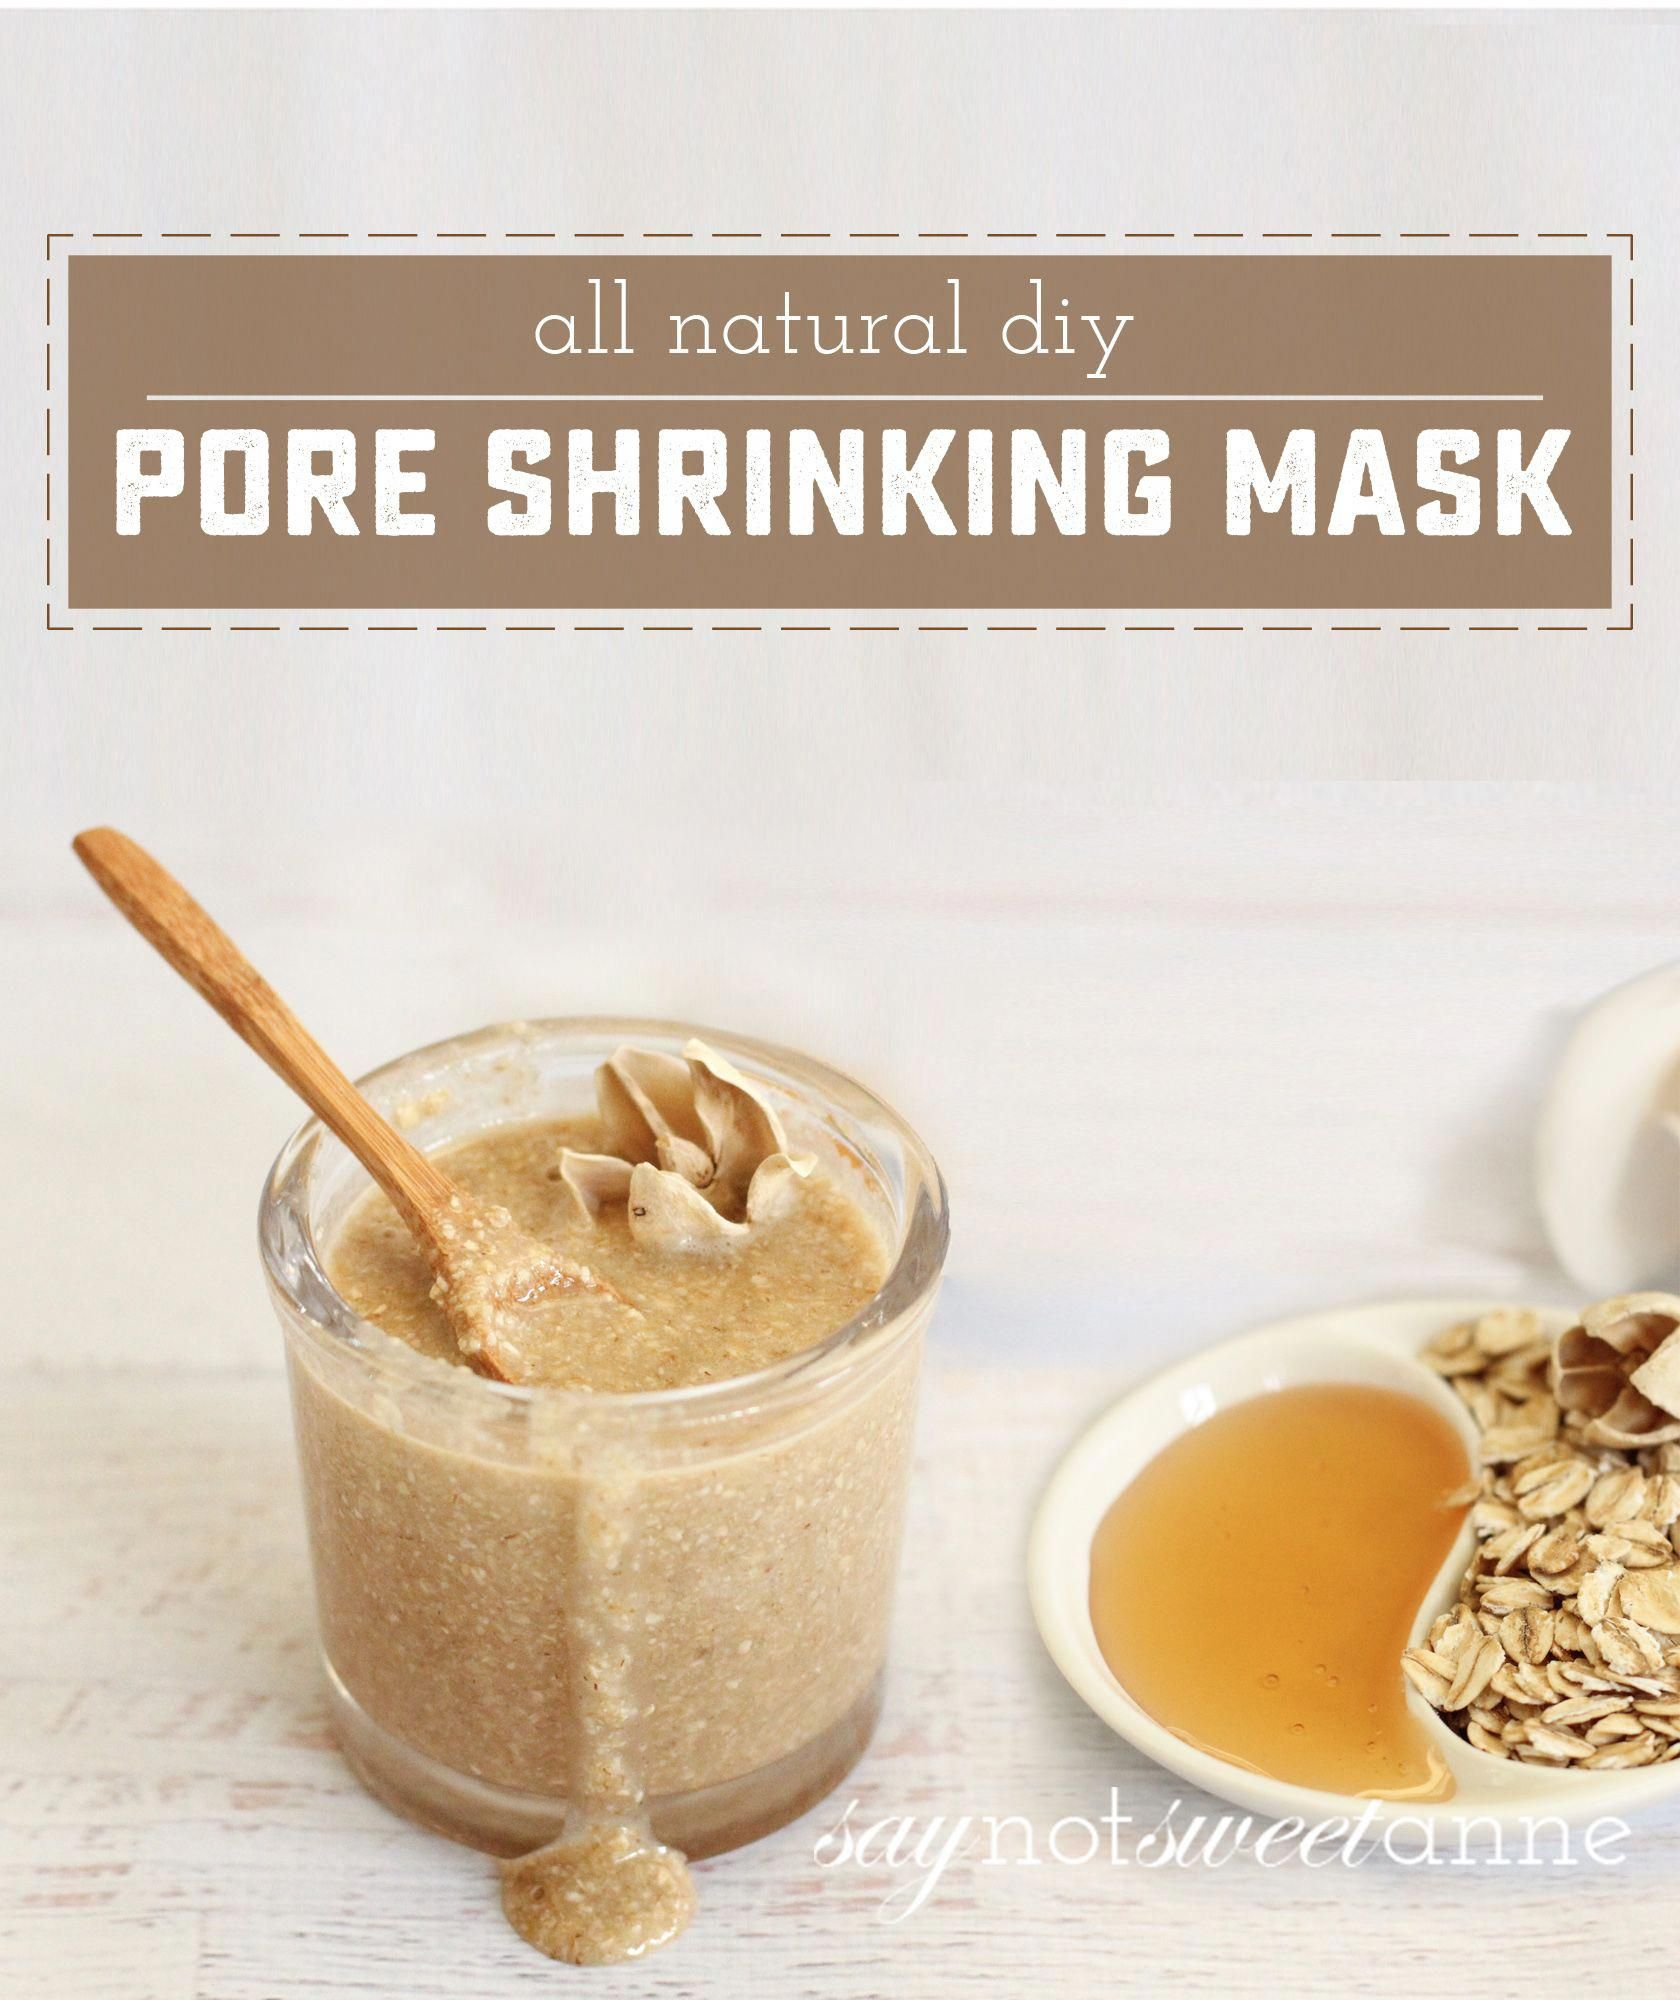 How To Make an Amazing Pore Shrinking Mask - Sweet Anne Designs